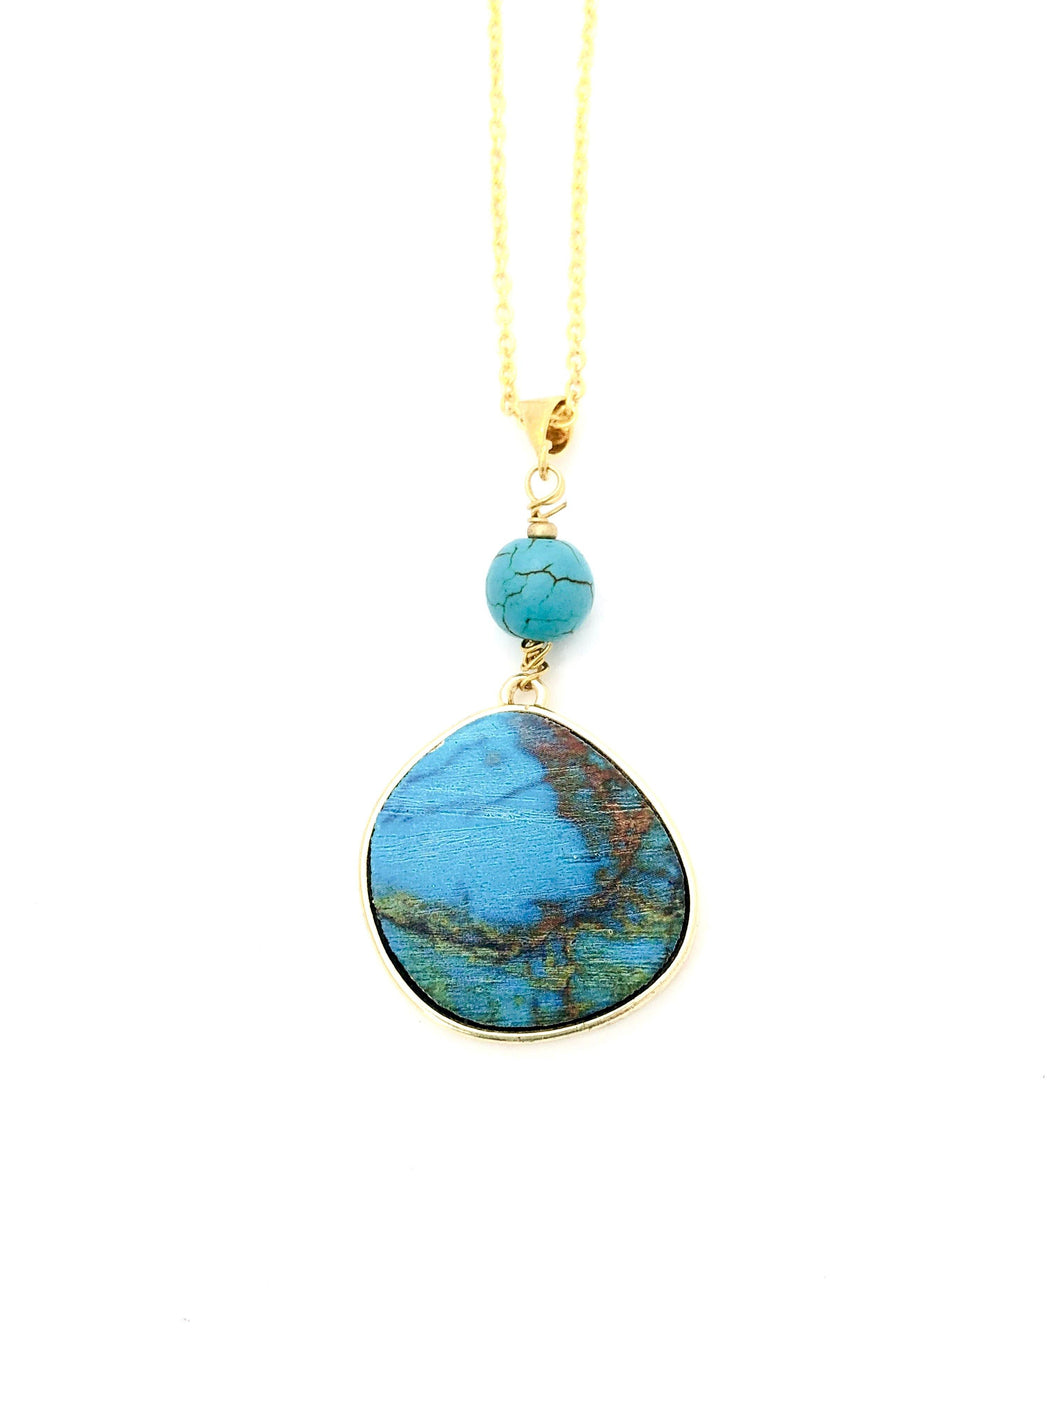 Blue Wood Gold Pendant with a Turquoise Stone - Full Moon Designs